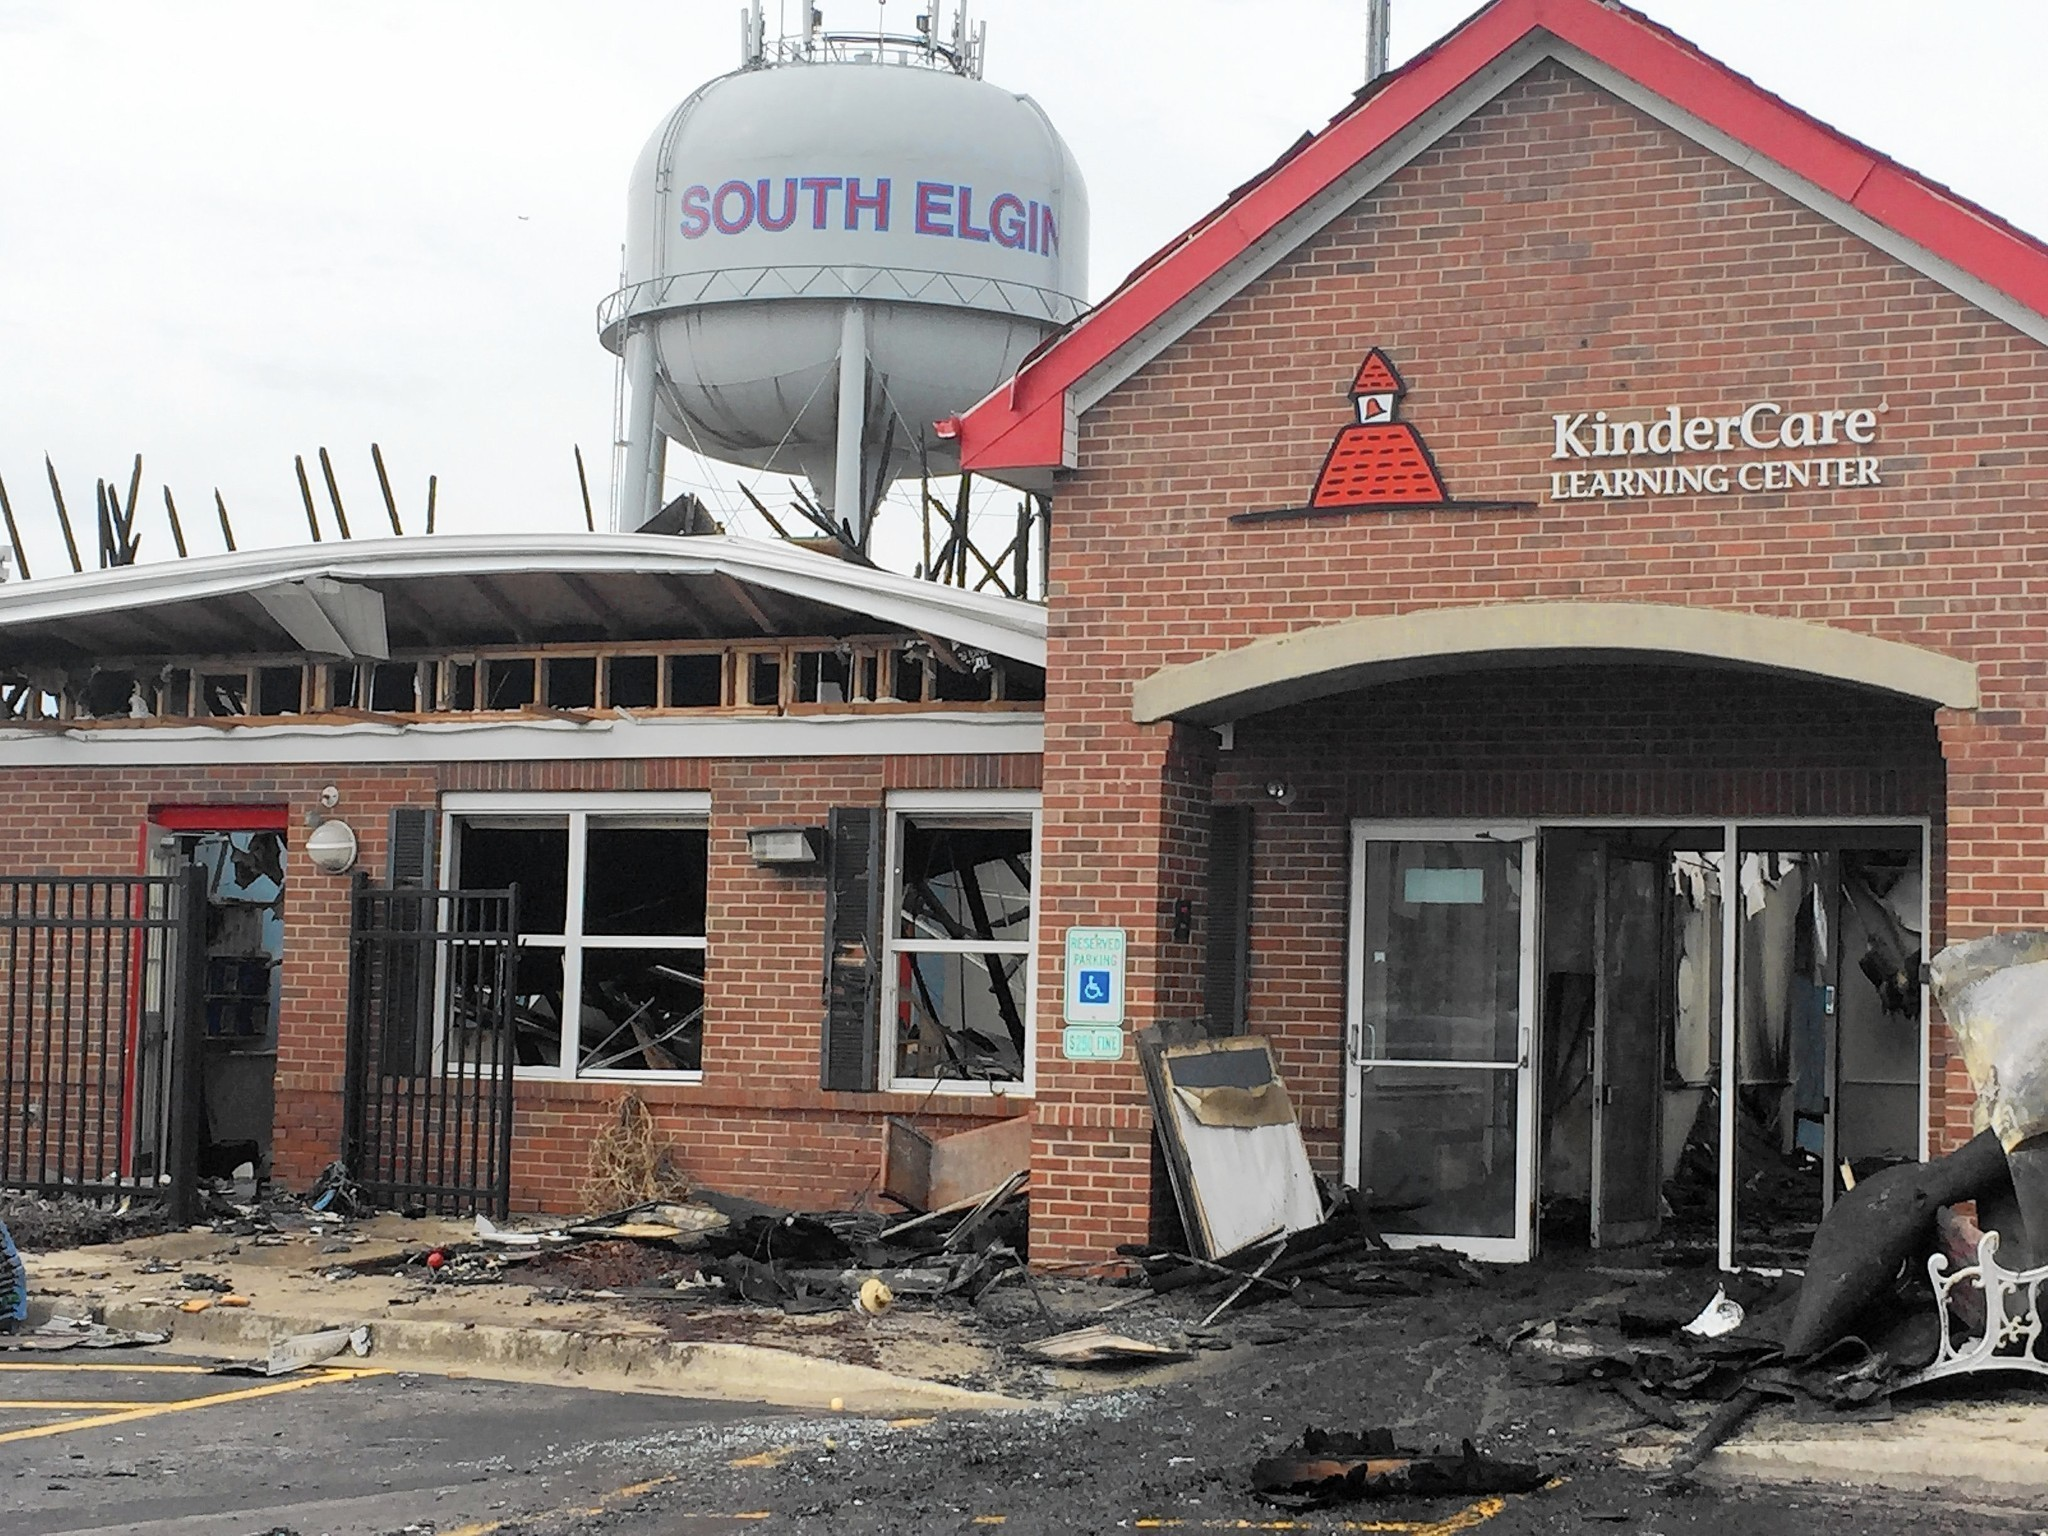 No Injuries In Early Morning Fire At South Elgin Day Care